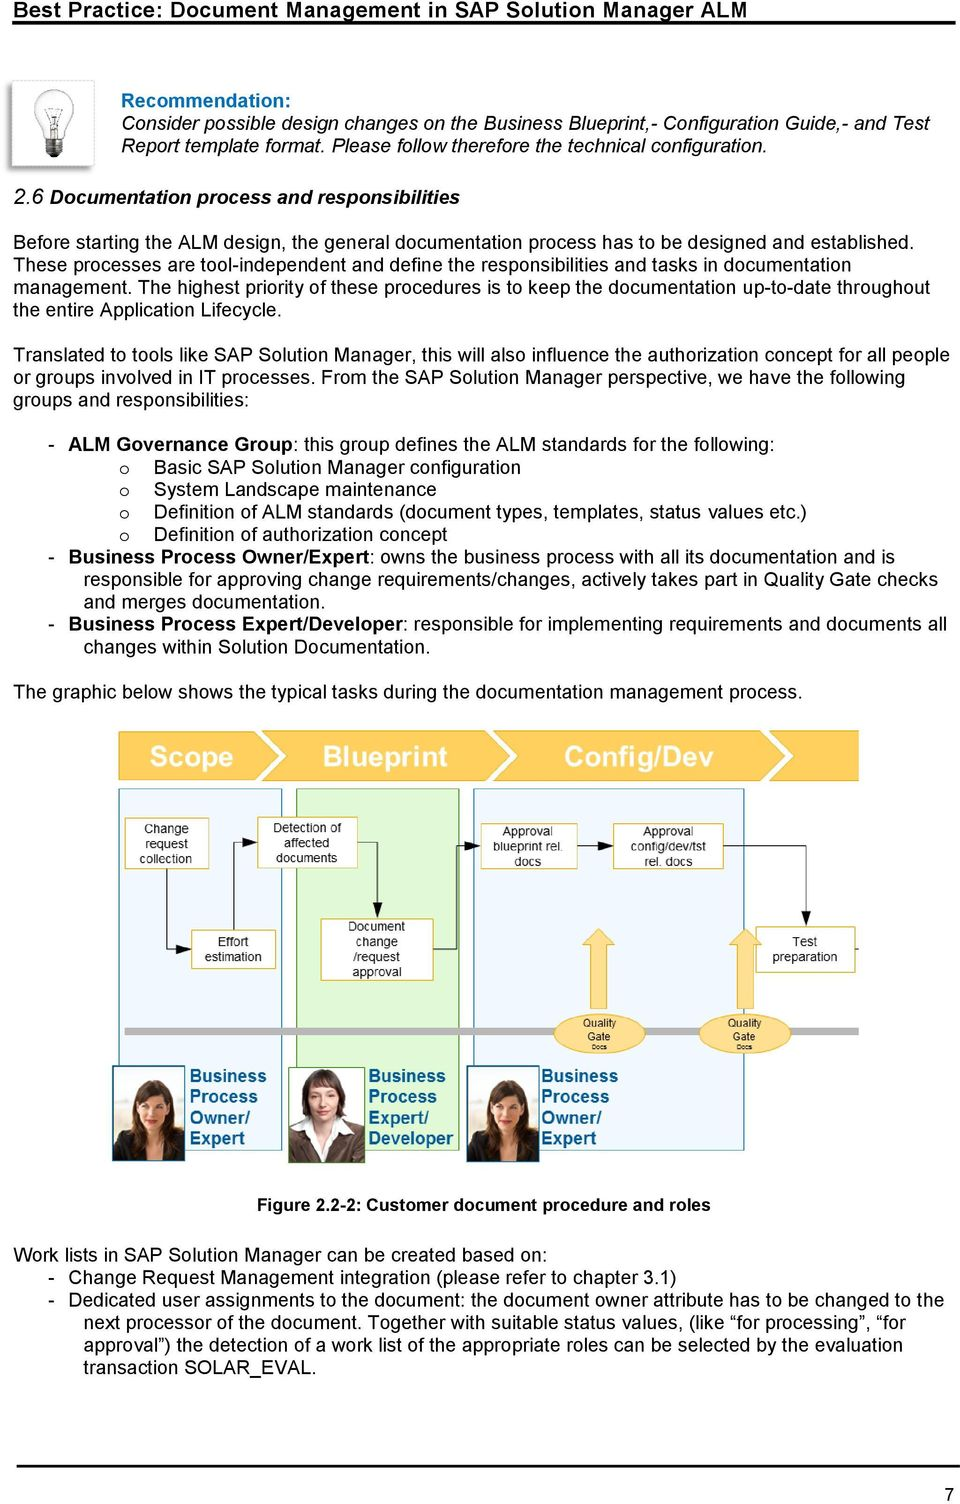 Document management in sap solution manager application lifecycle these processes are tool independent and define the responsibilities and tasks in documentation management malvernweather Image collections